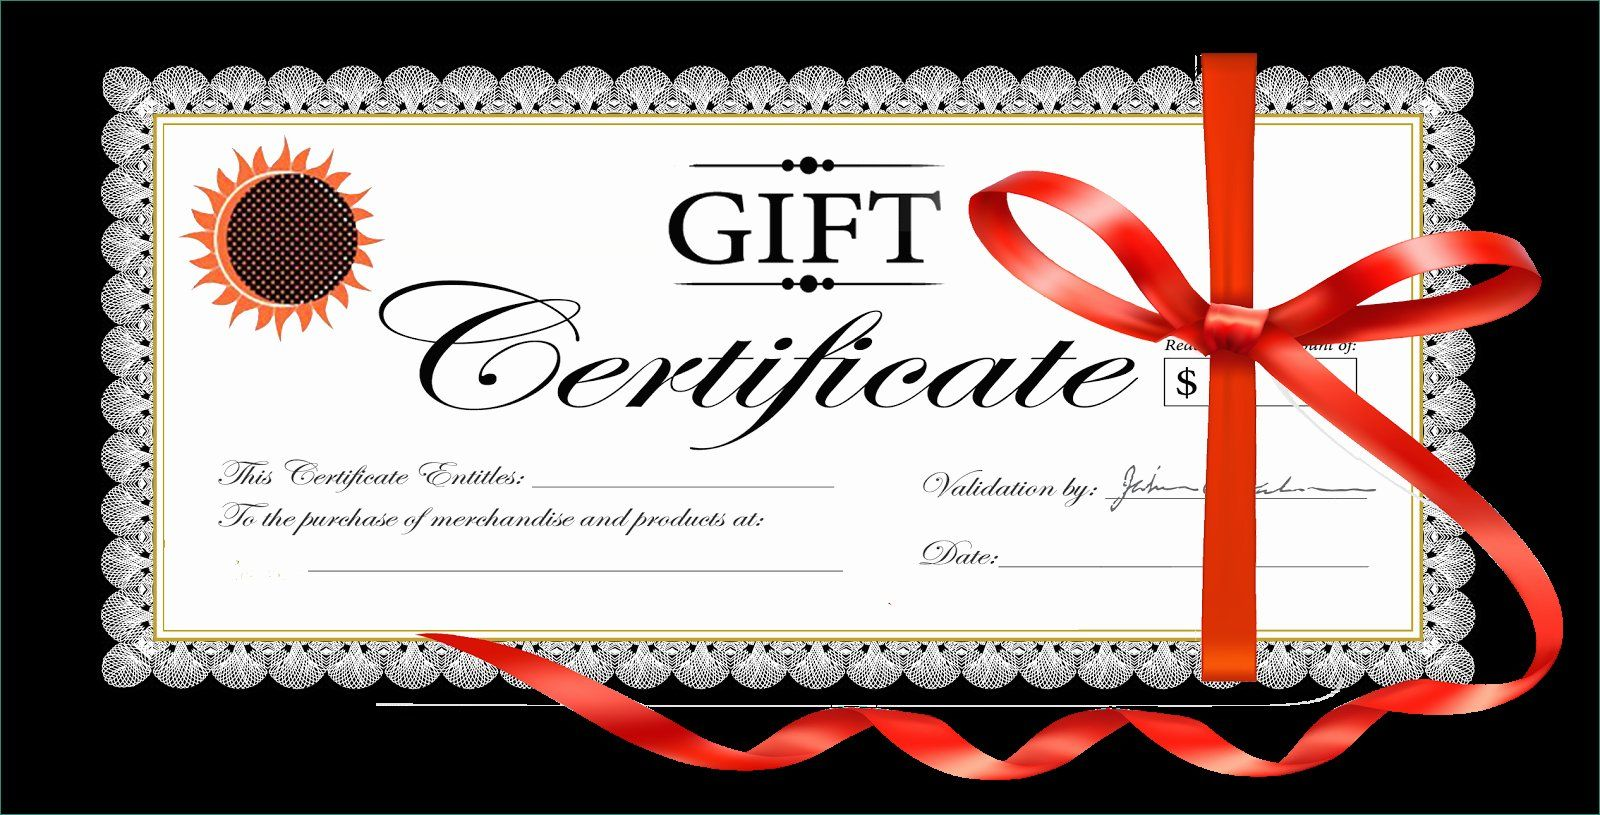 Gift Certificate Templates Printable Fill Online For Fillable Gift Ce Free Gift Certificate Template Gift Certificate Template Word Gift Certificate Template